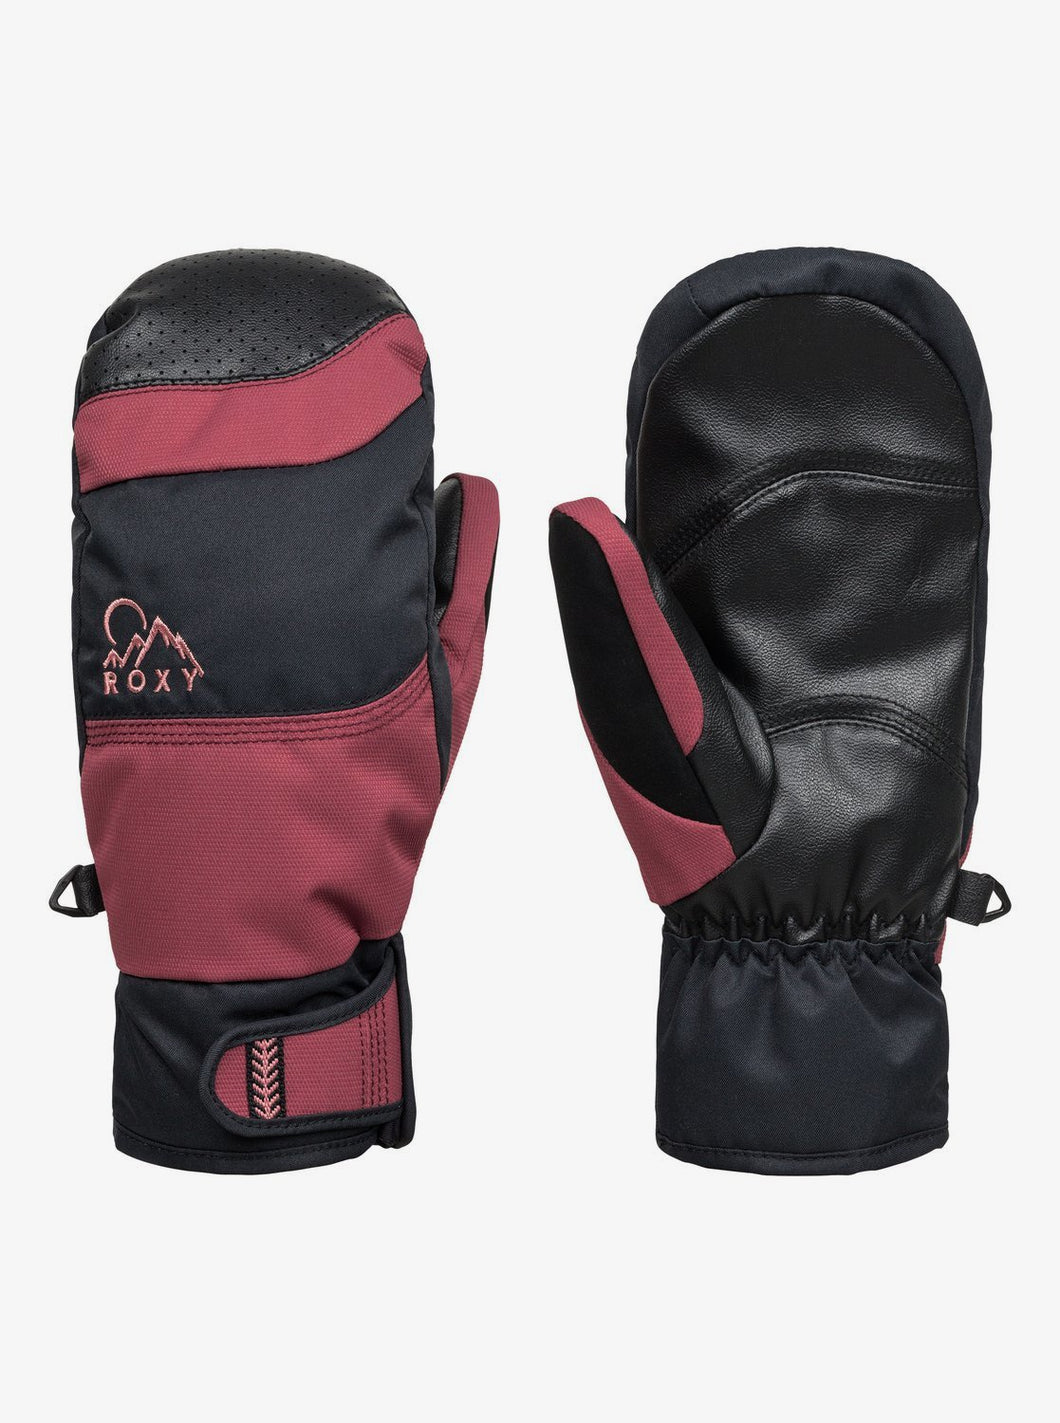 Roxy Women's Lumio Mitt Oxblood Red Front And Back View